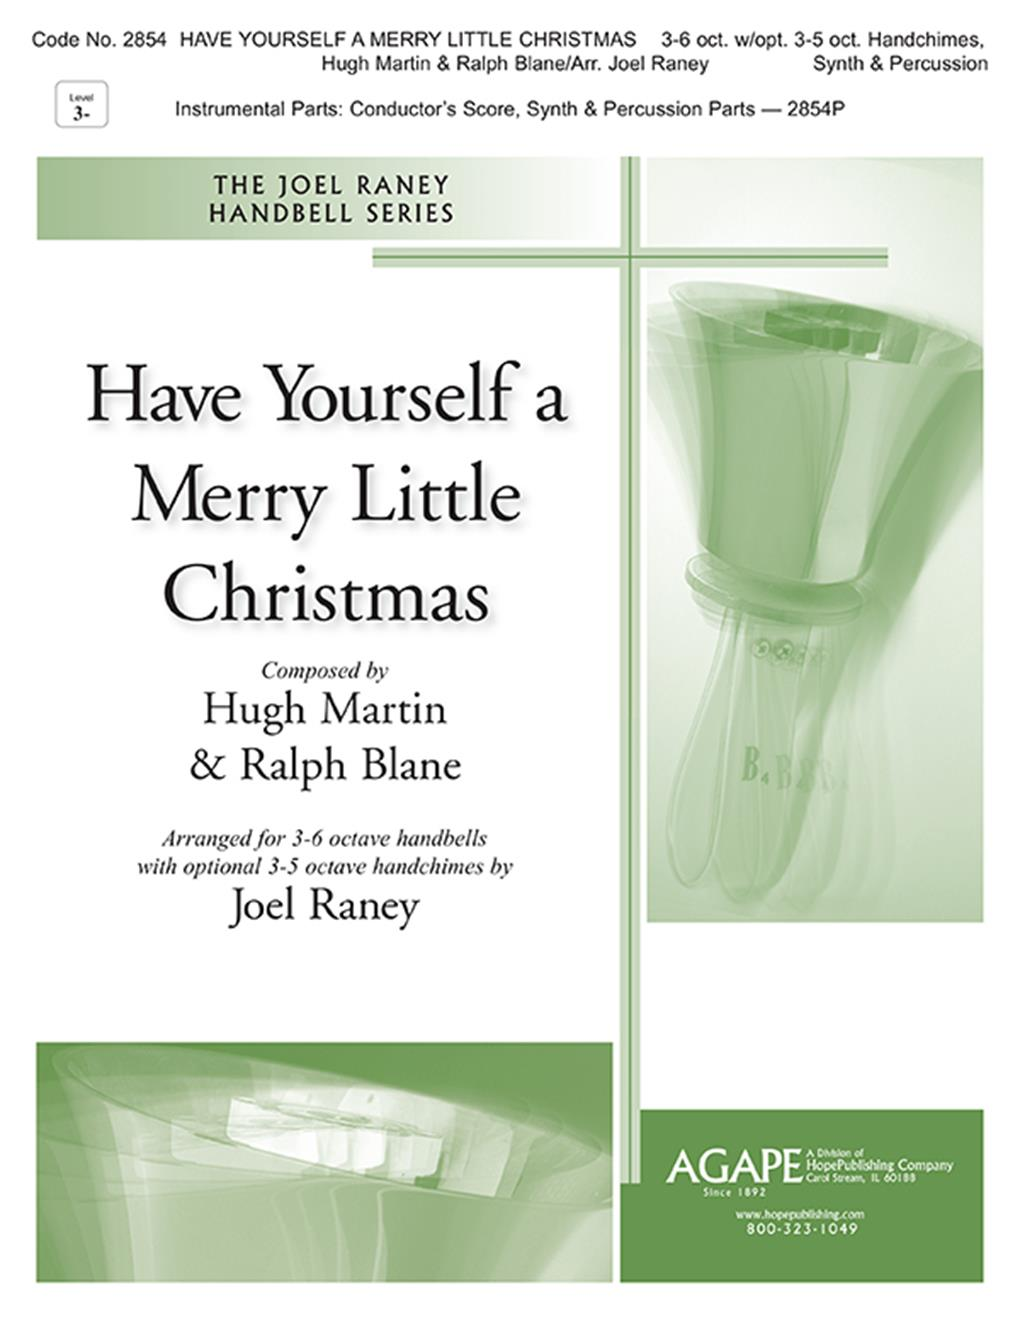 Have Yourself A Merry Little Christmas - 3-5 oct. Cover Image